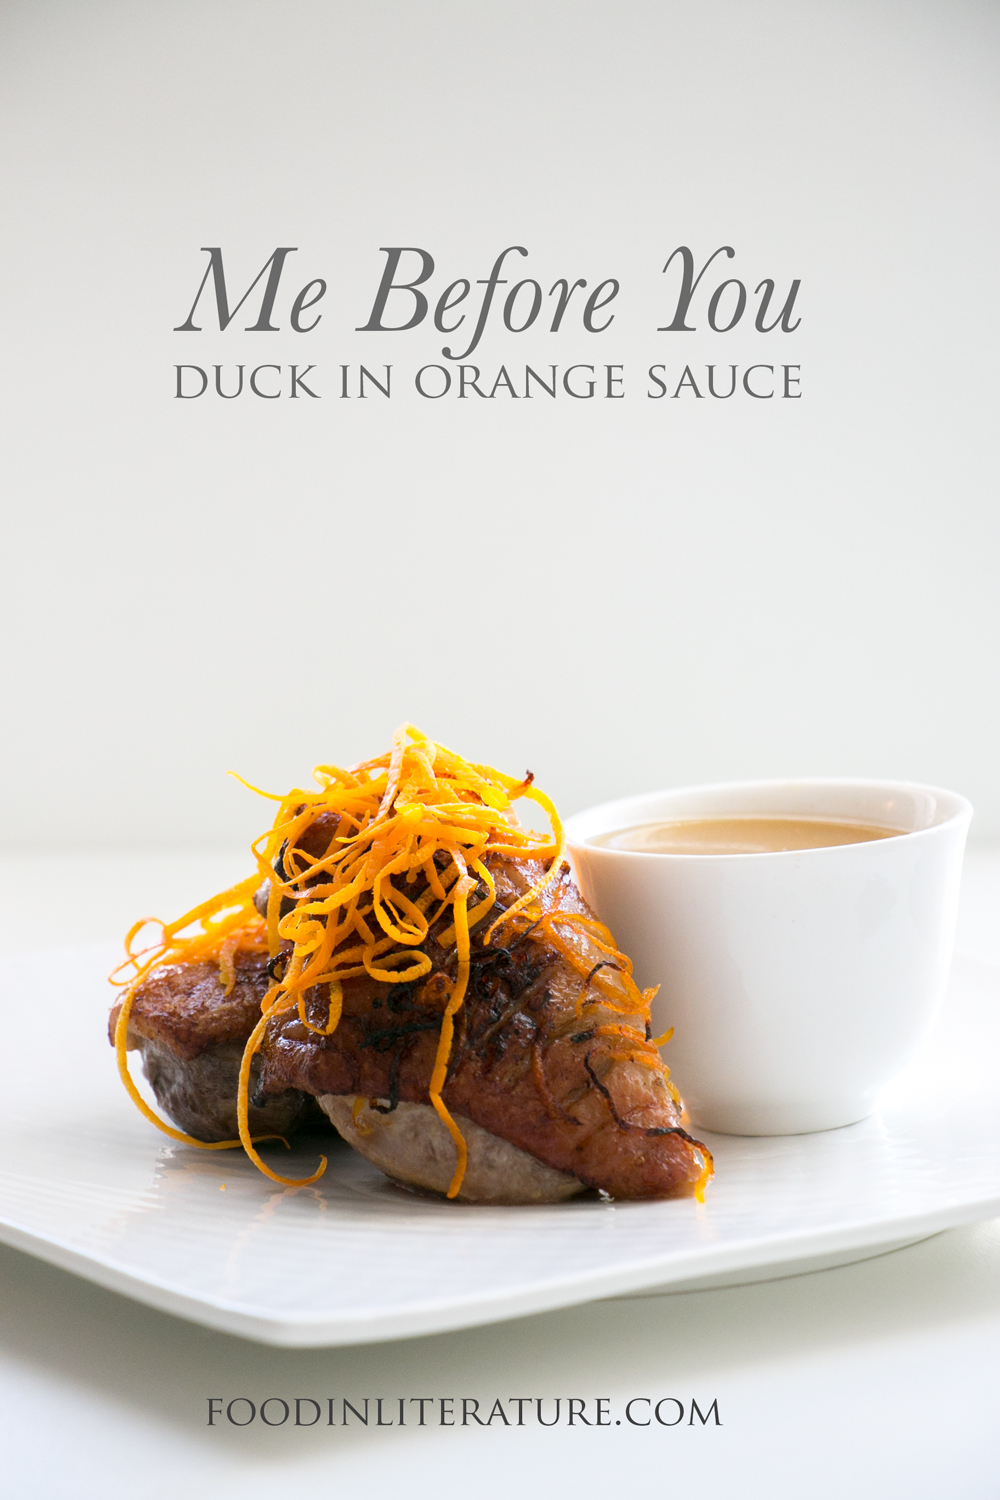 Duck in Orange Sauce | Me Before You